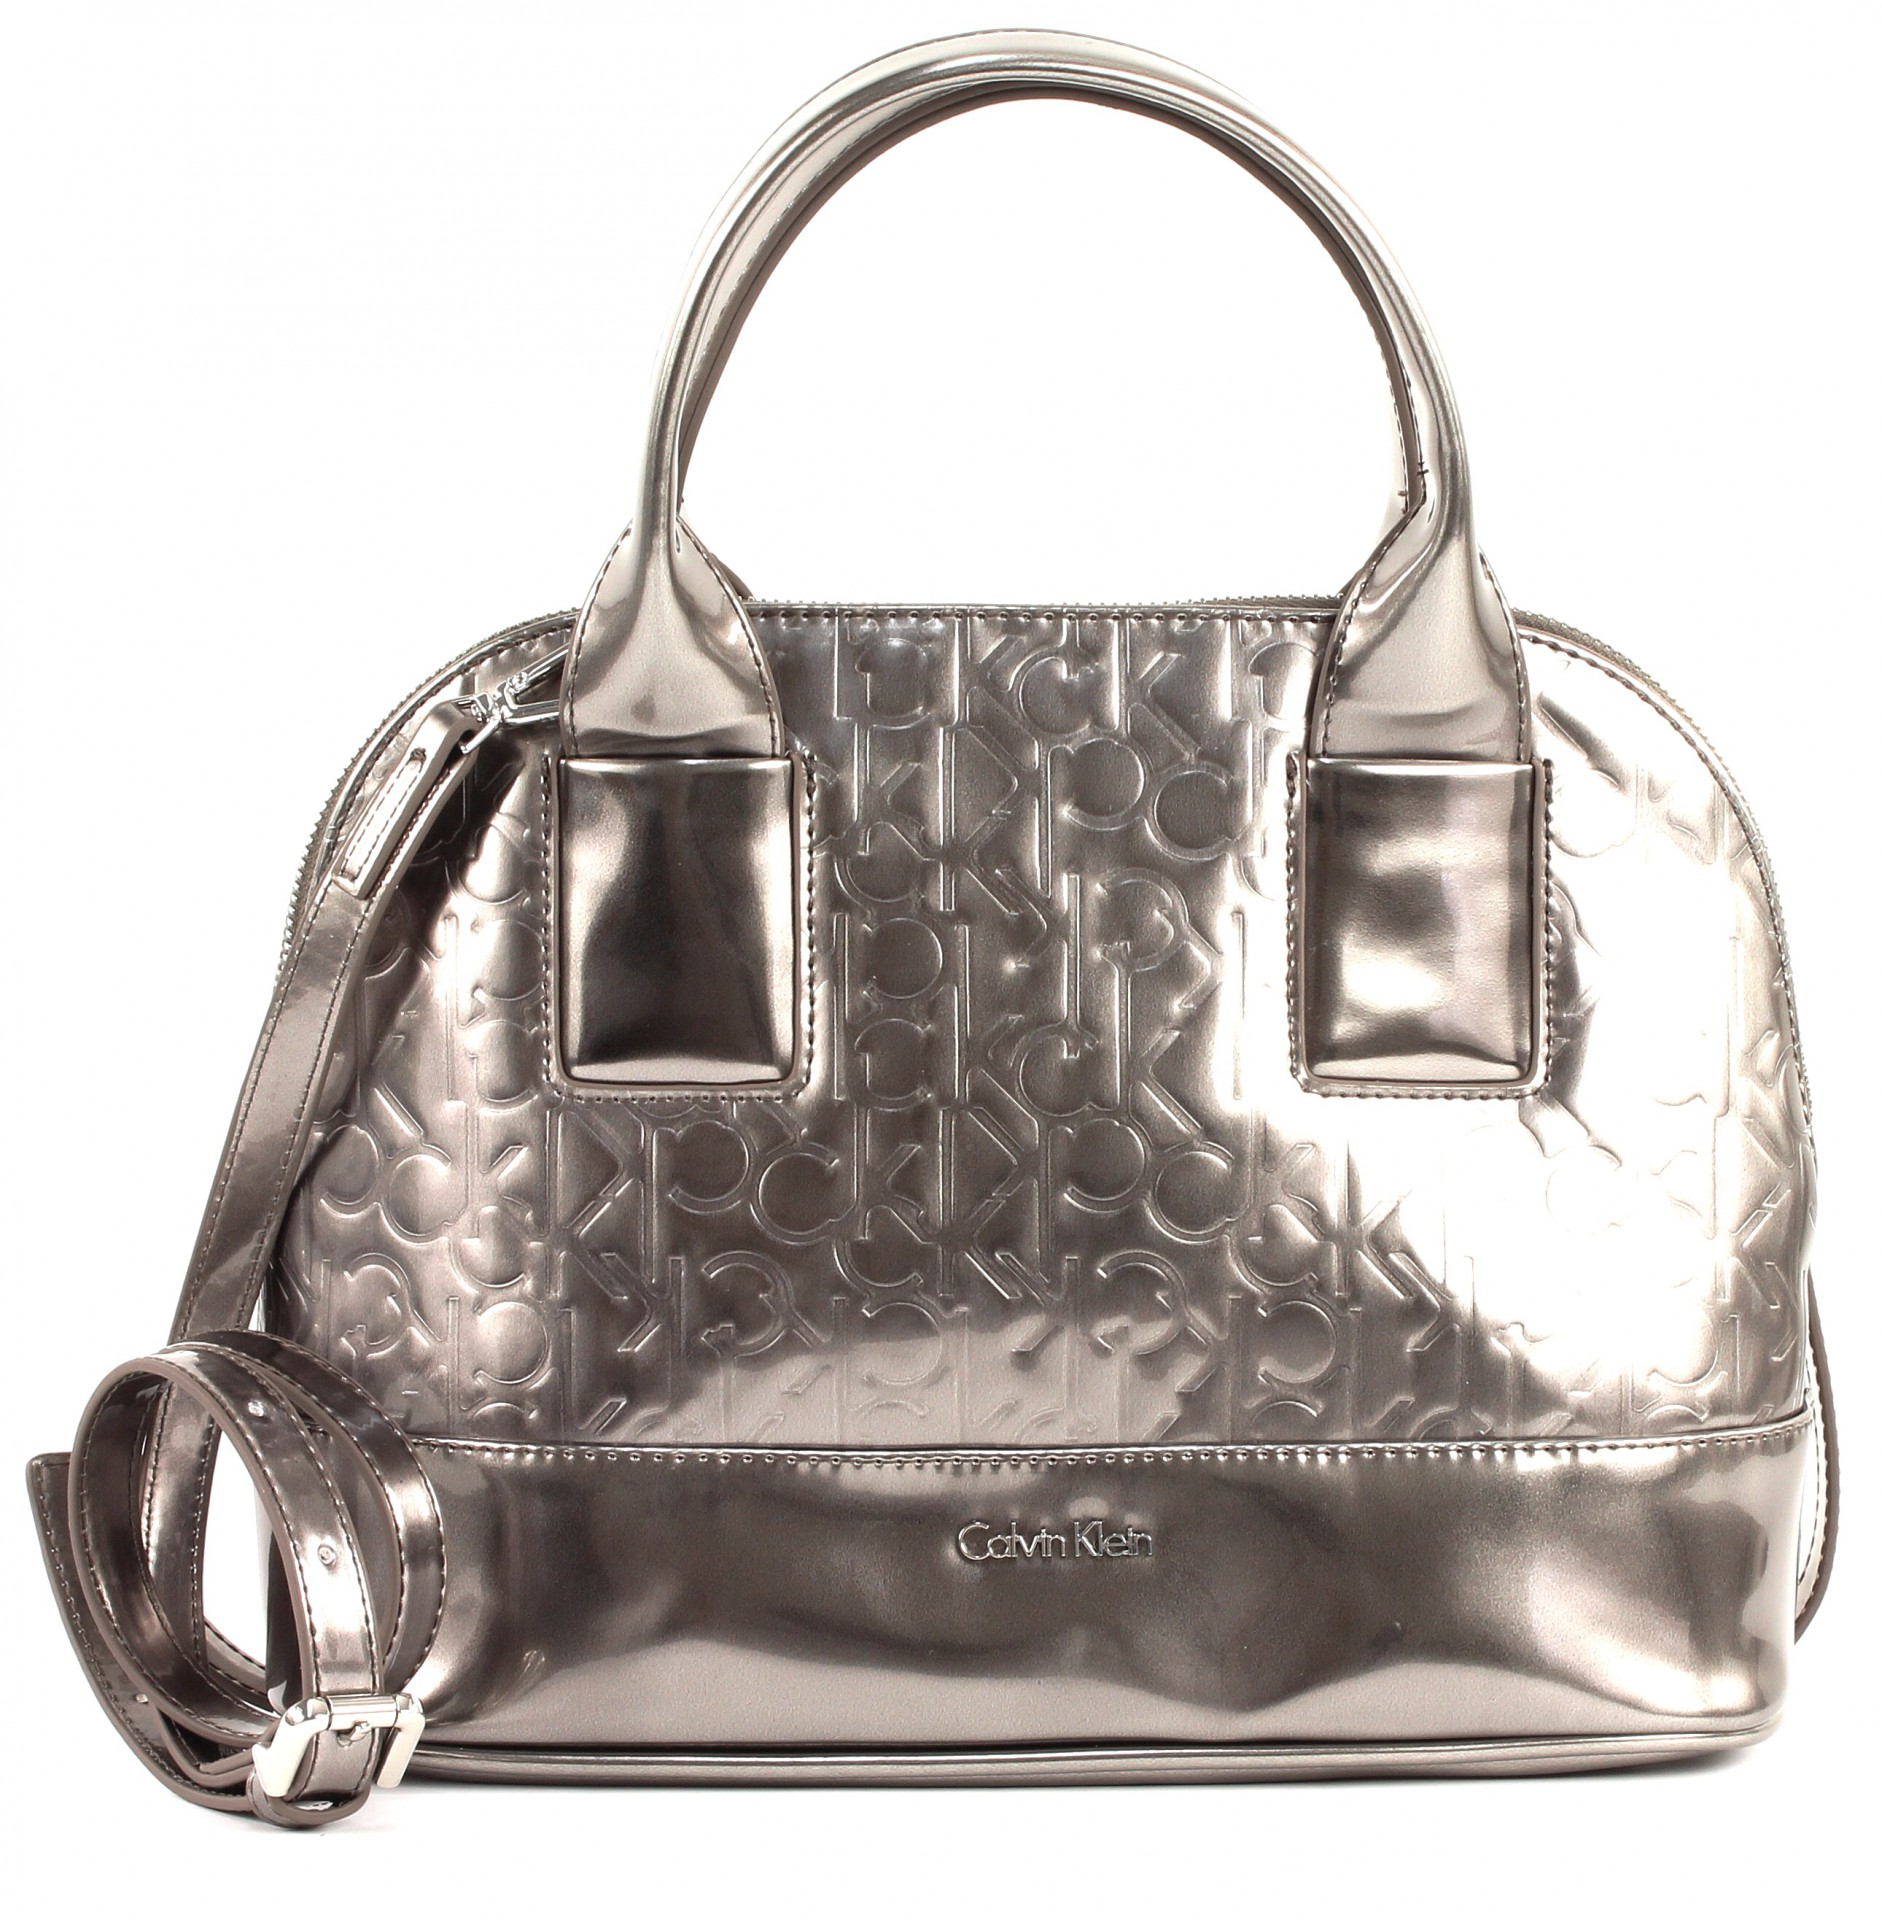 calvin klein maggie small satchel tasche handtasche umh ngetasche damen silber ebay. Black Bedroom Furniture Sets. Home Design Ideas